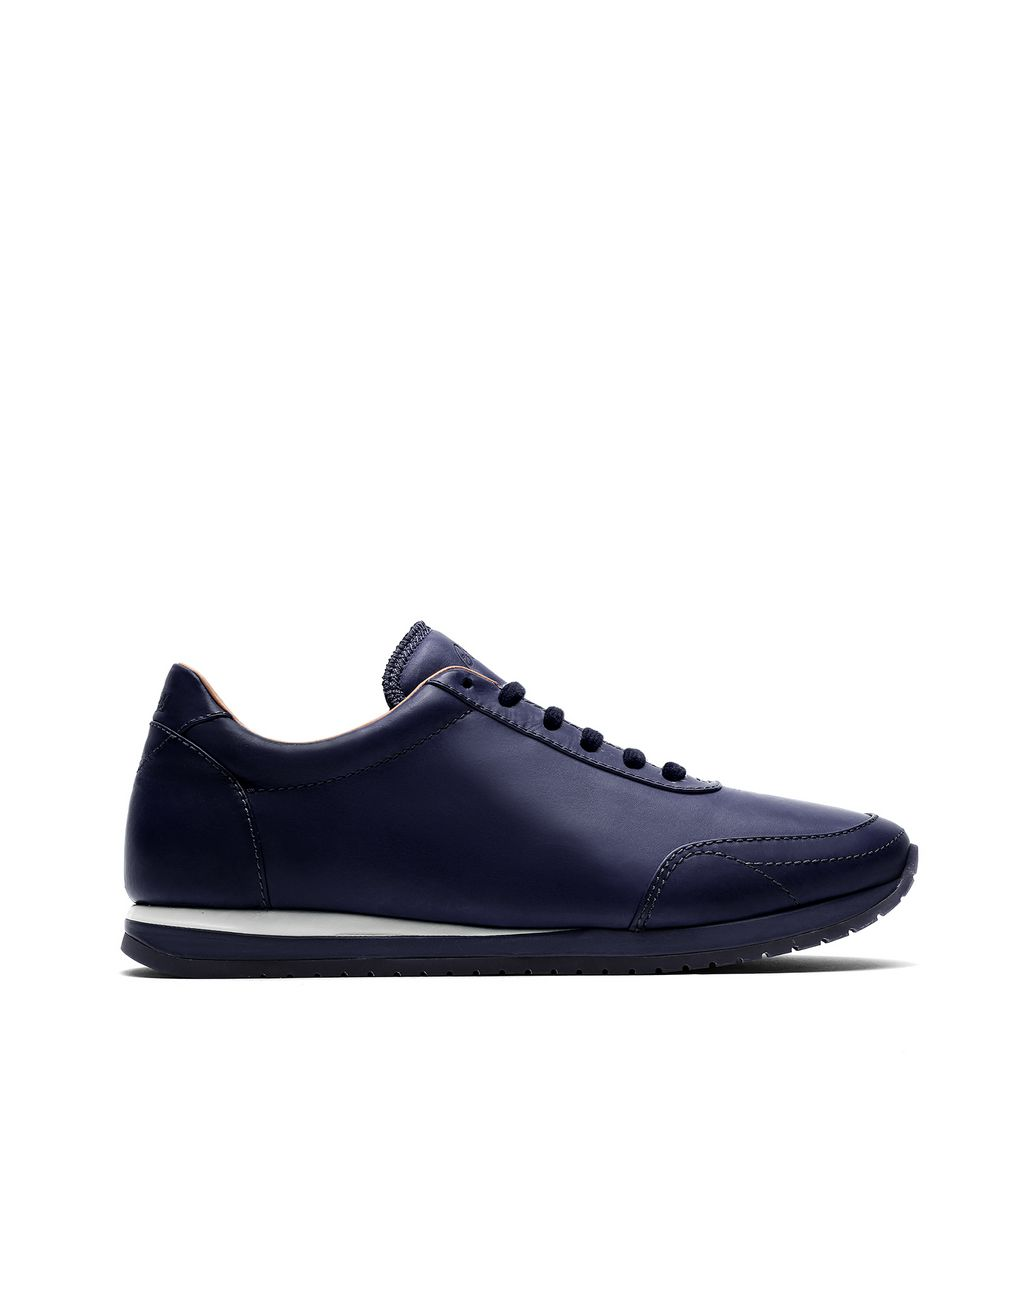 BRIONI Navy Blue and White Runner Sneakers Sneakers [*** pickupInStoreShippingNotGuaranteed_info ***] f